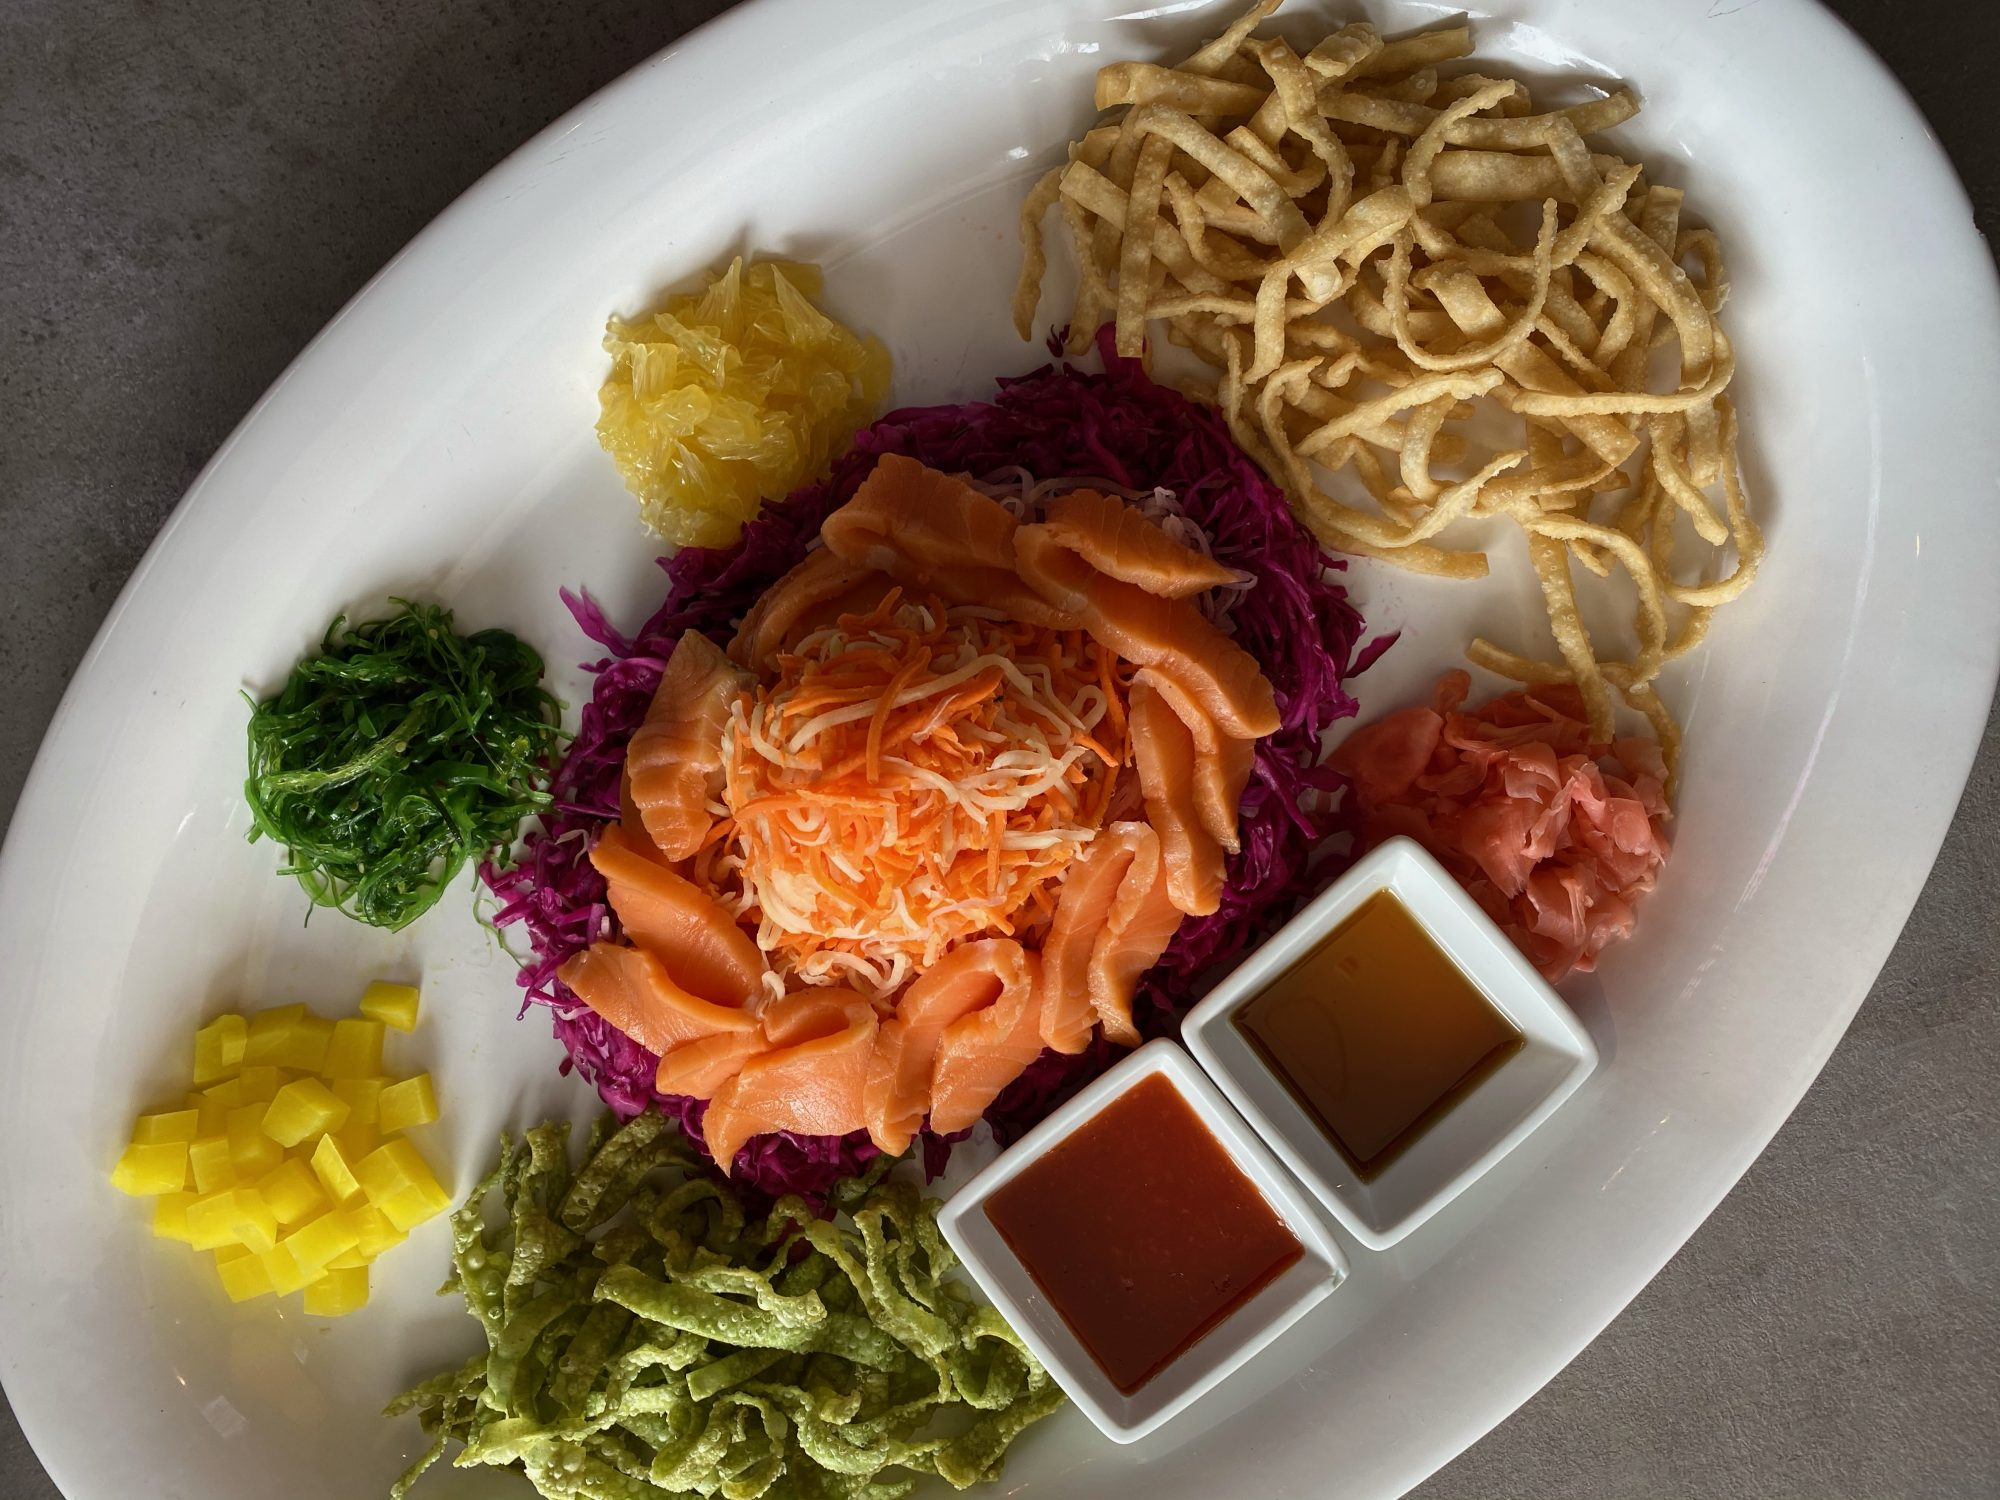 prosperity toss with raw salmon, pickled vegetables, and wontons from Phat Eatery restaurant